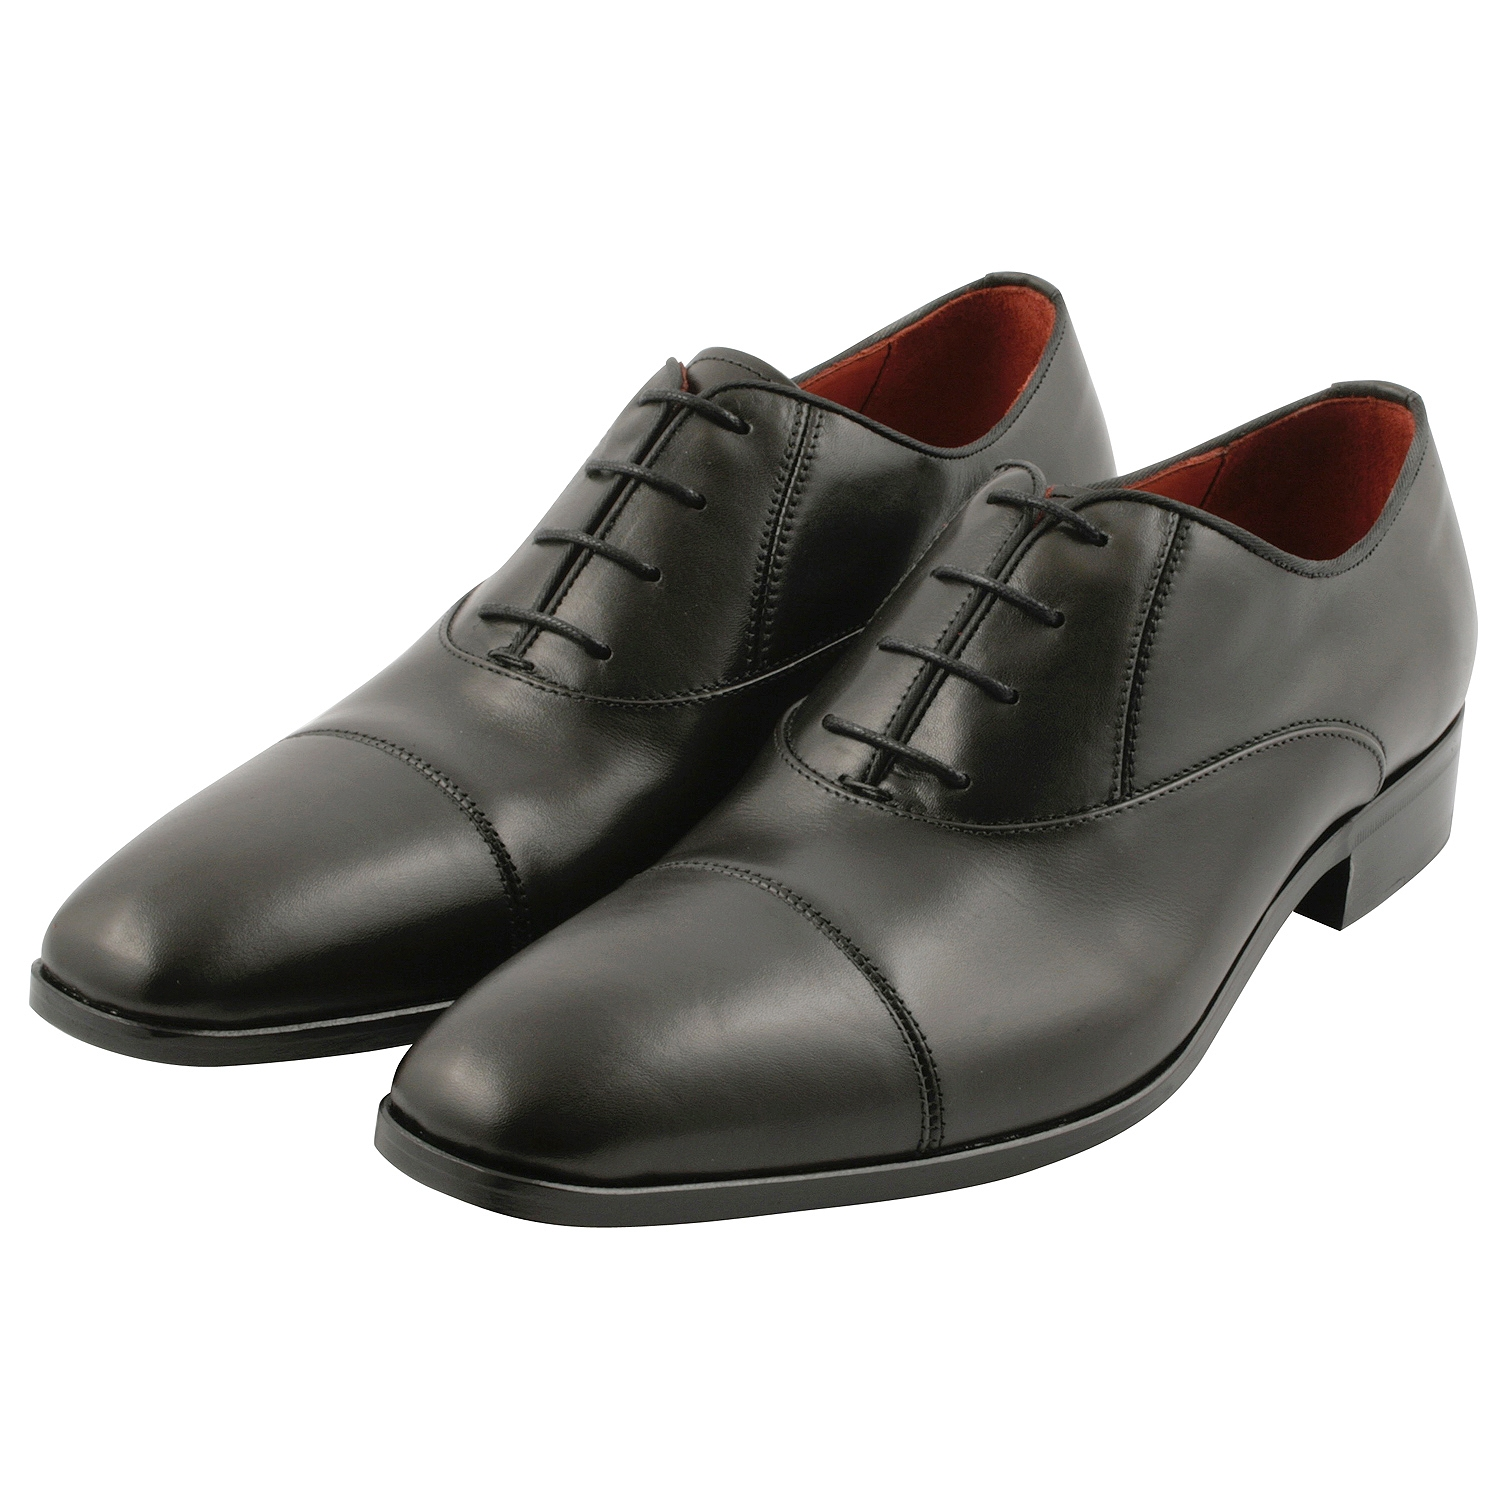 Chaussure italienne homme Fangio en cuir gris Exclusif